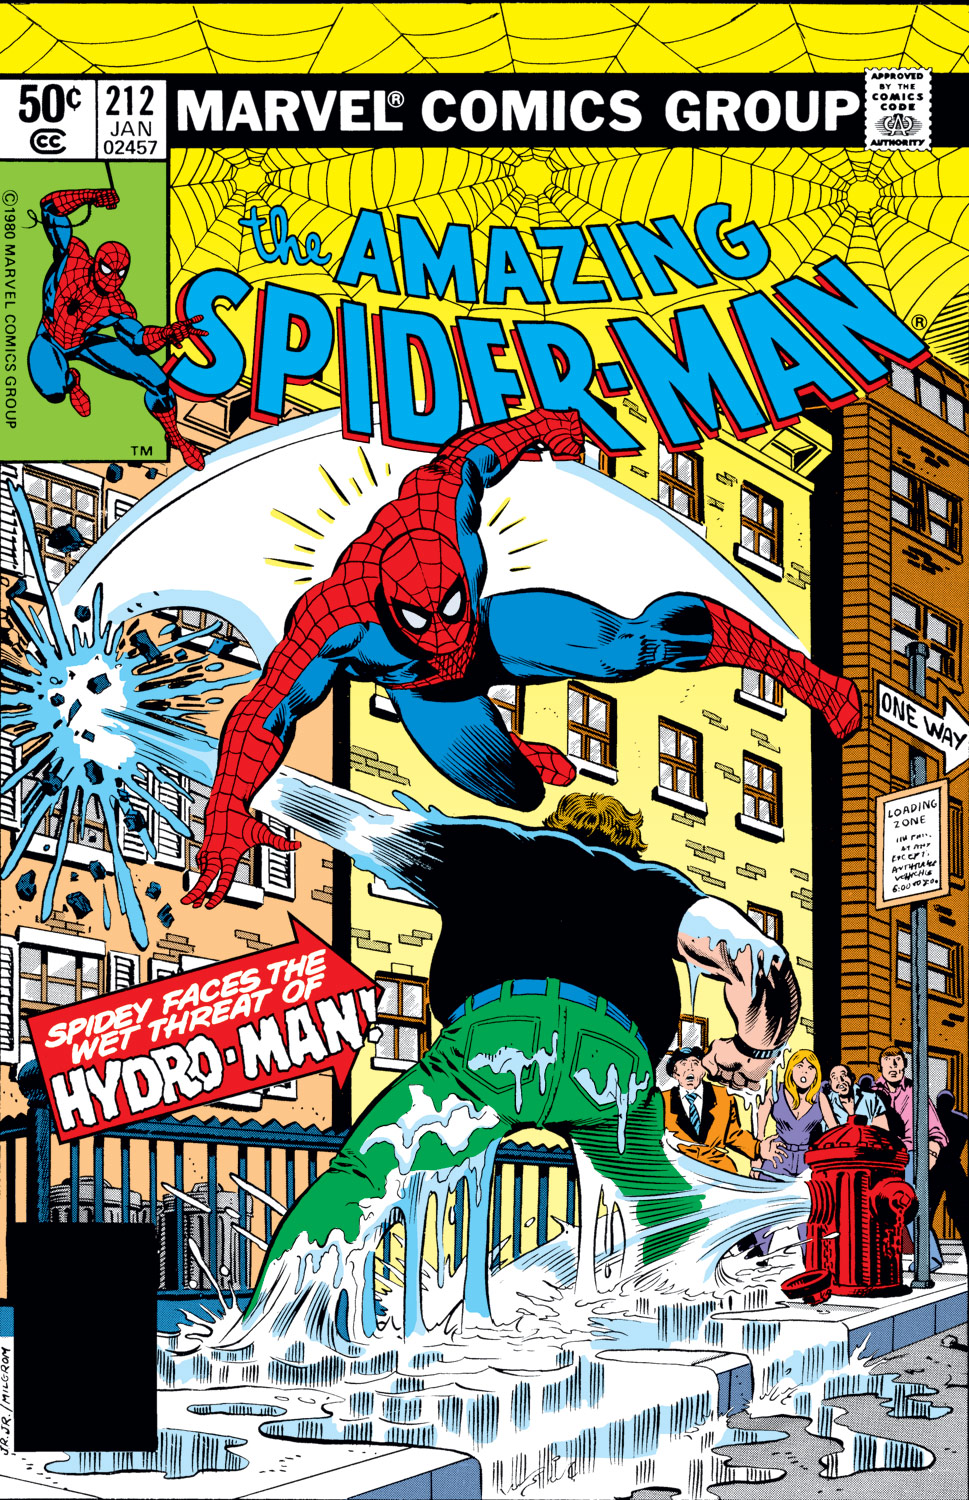 The Amazing Spider-Man (1963) #212